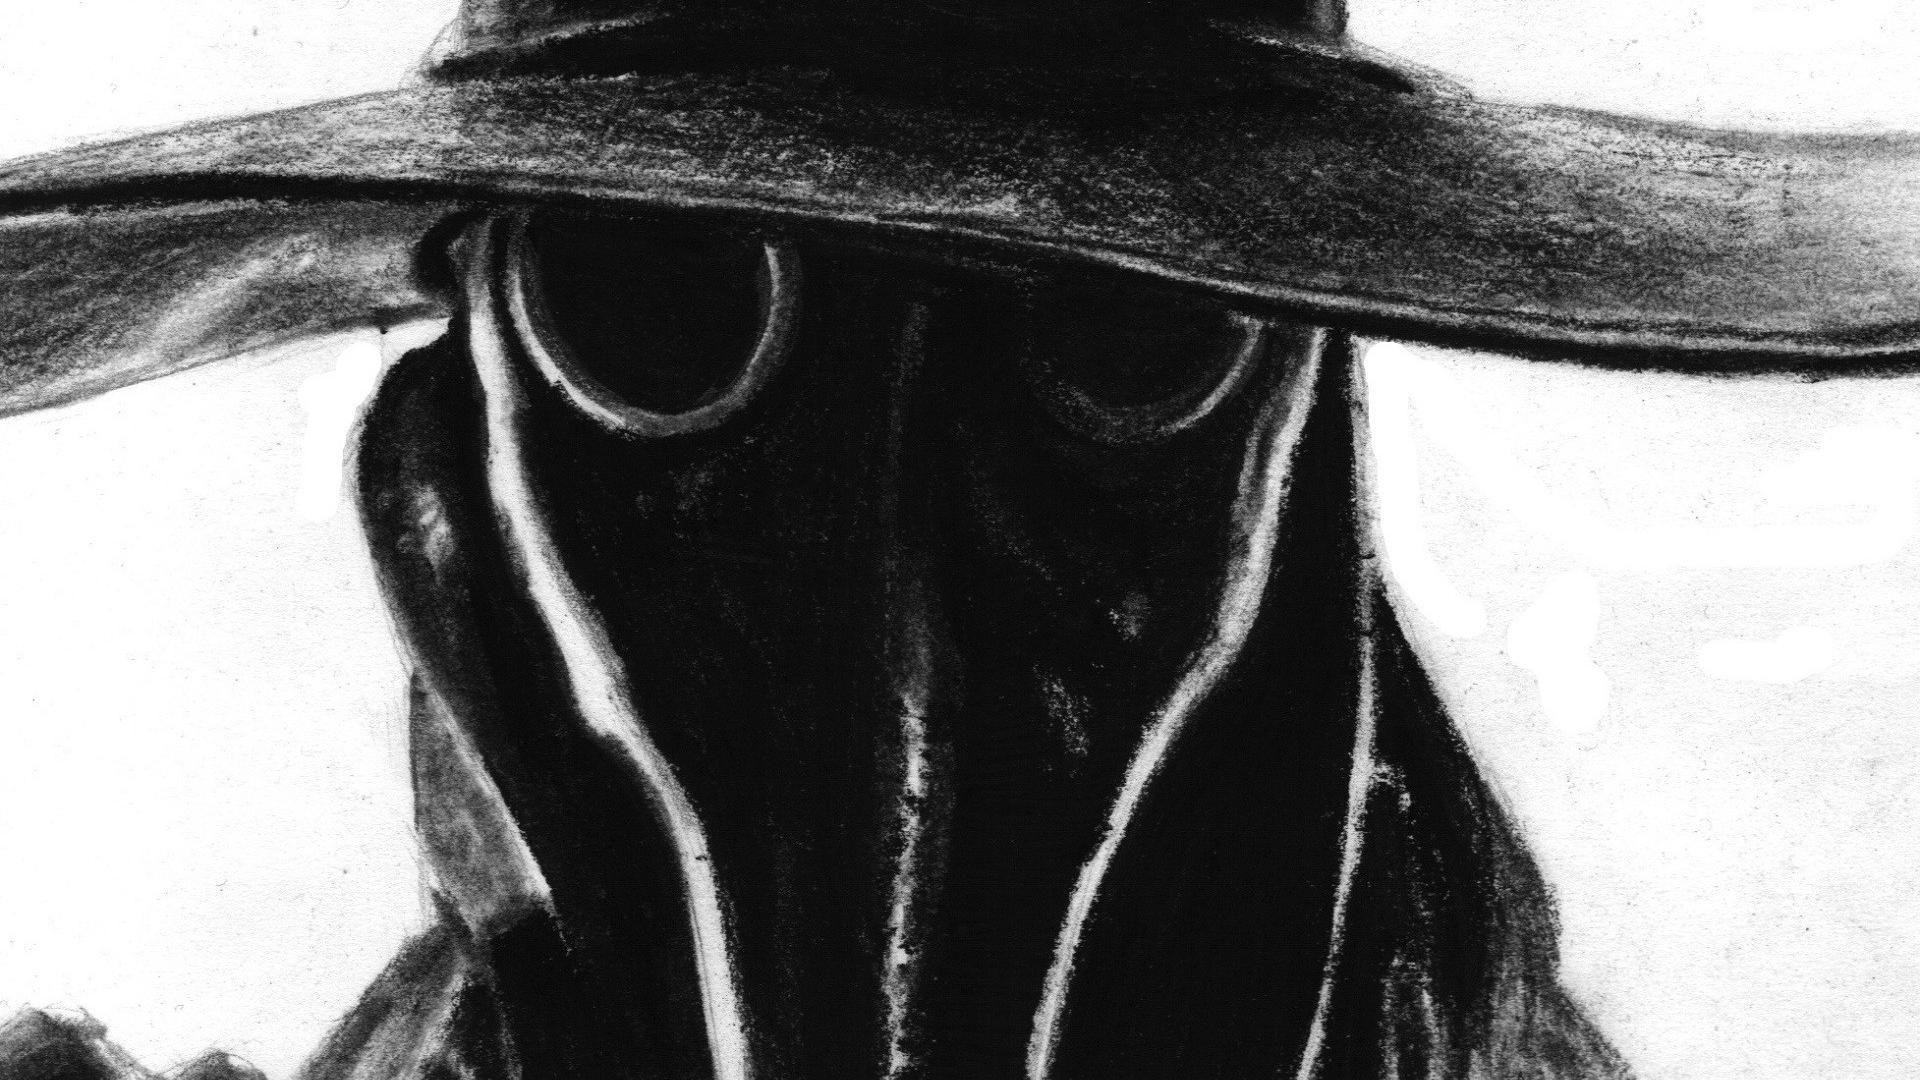 Plague Doctor Wallpaper. fortnite plague outfits fortnite skins. 77 ...